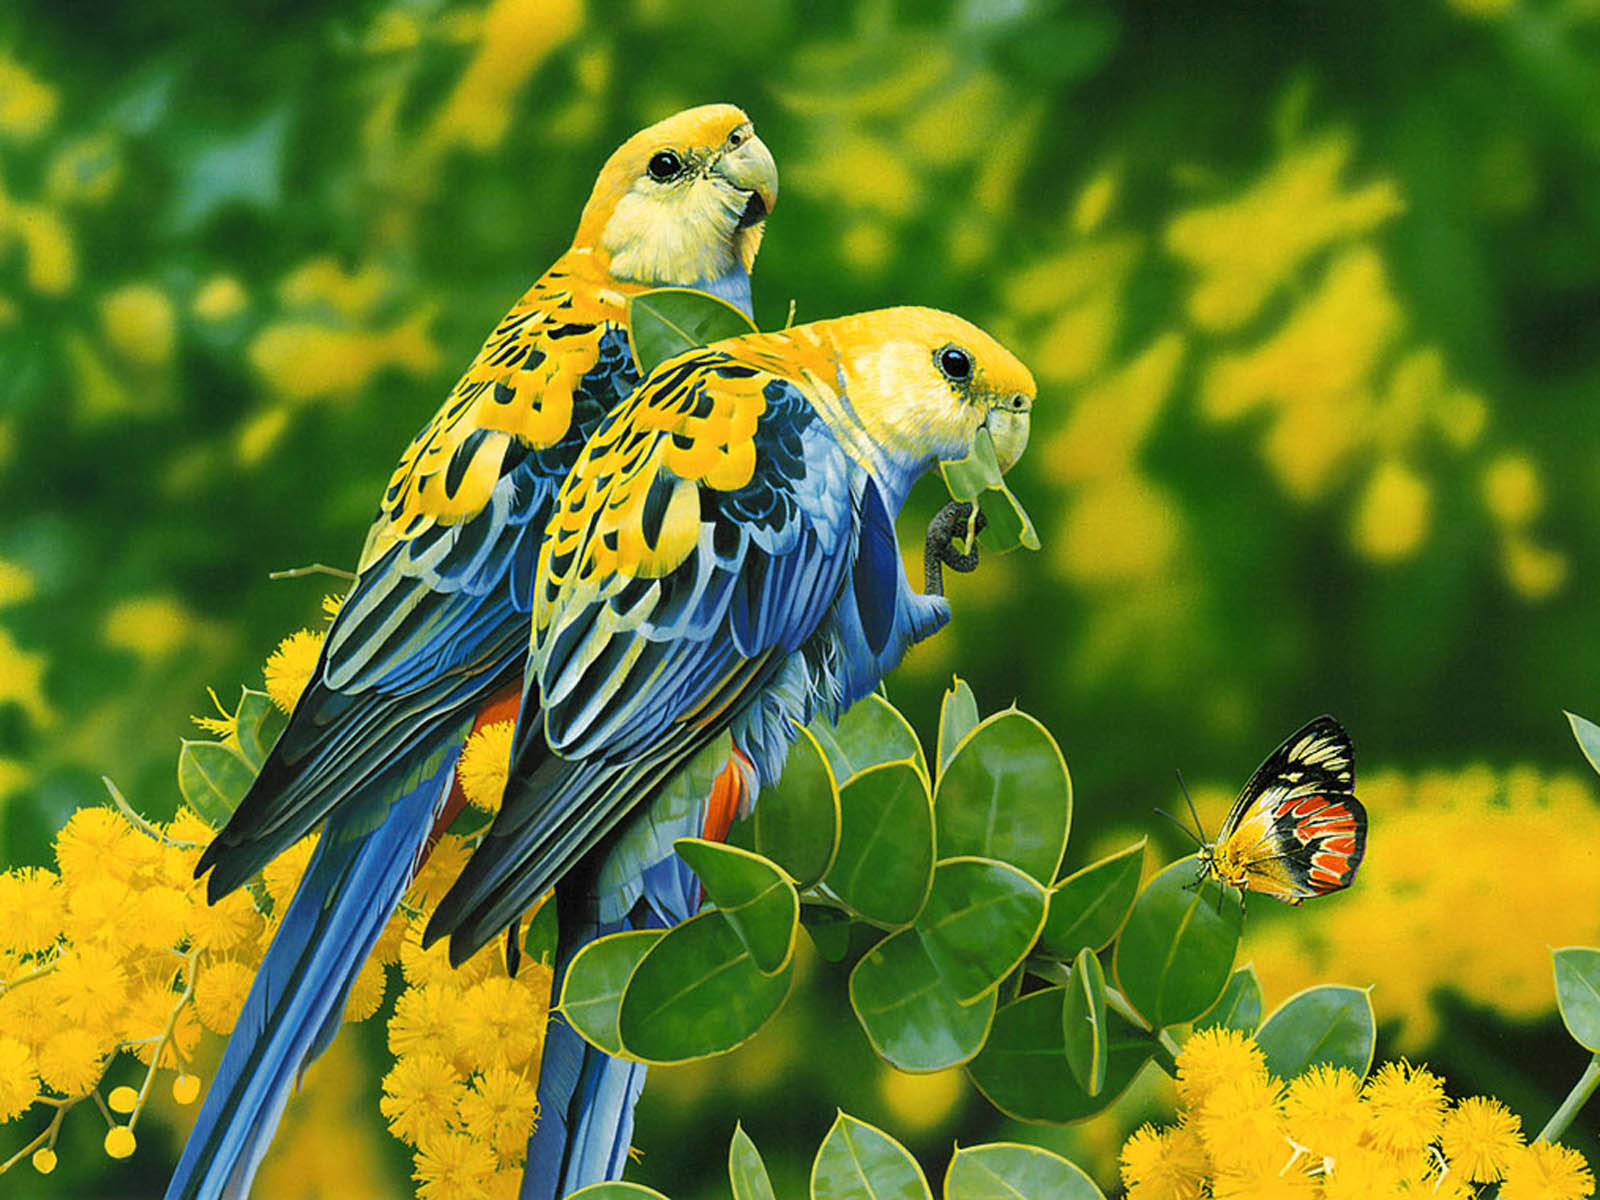 Love Birds Wallpaper For Mobile : wallpapers: Love Birds Wallpapers